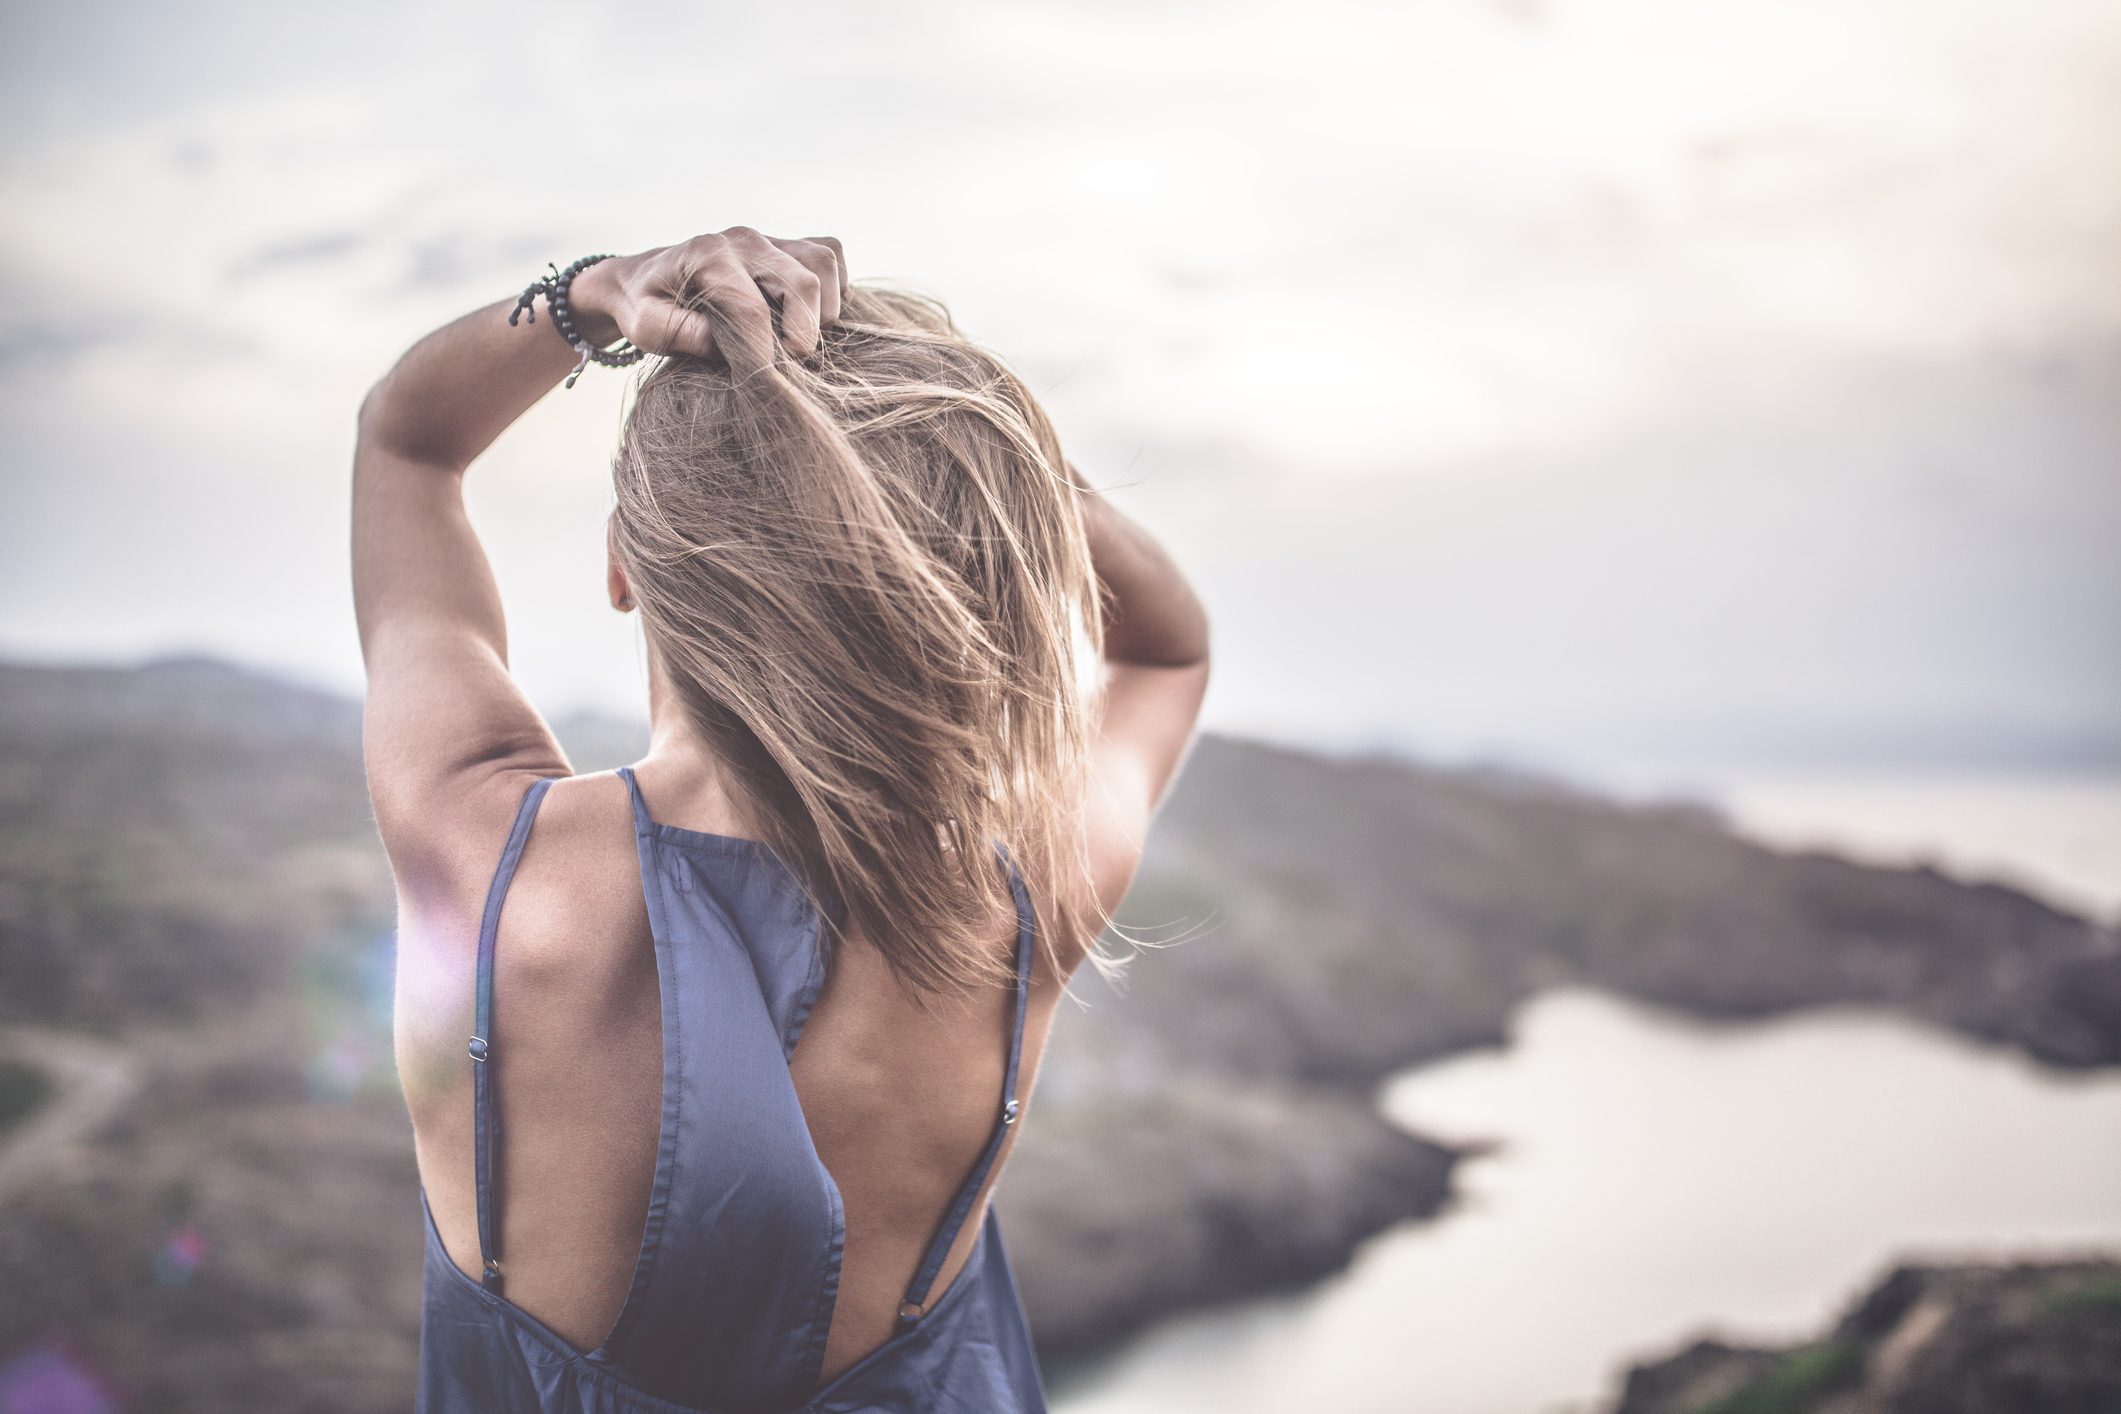 Get in touch with your senses, your self-compassion & your inner fire. - Our sensitive and trained San Francisco Bay Area's Psychotherapists and Psychologists can help you heal from body image issues, body and sexuality shame, and disordered eating.